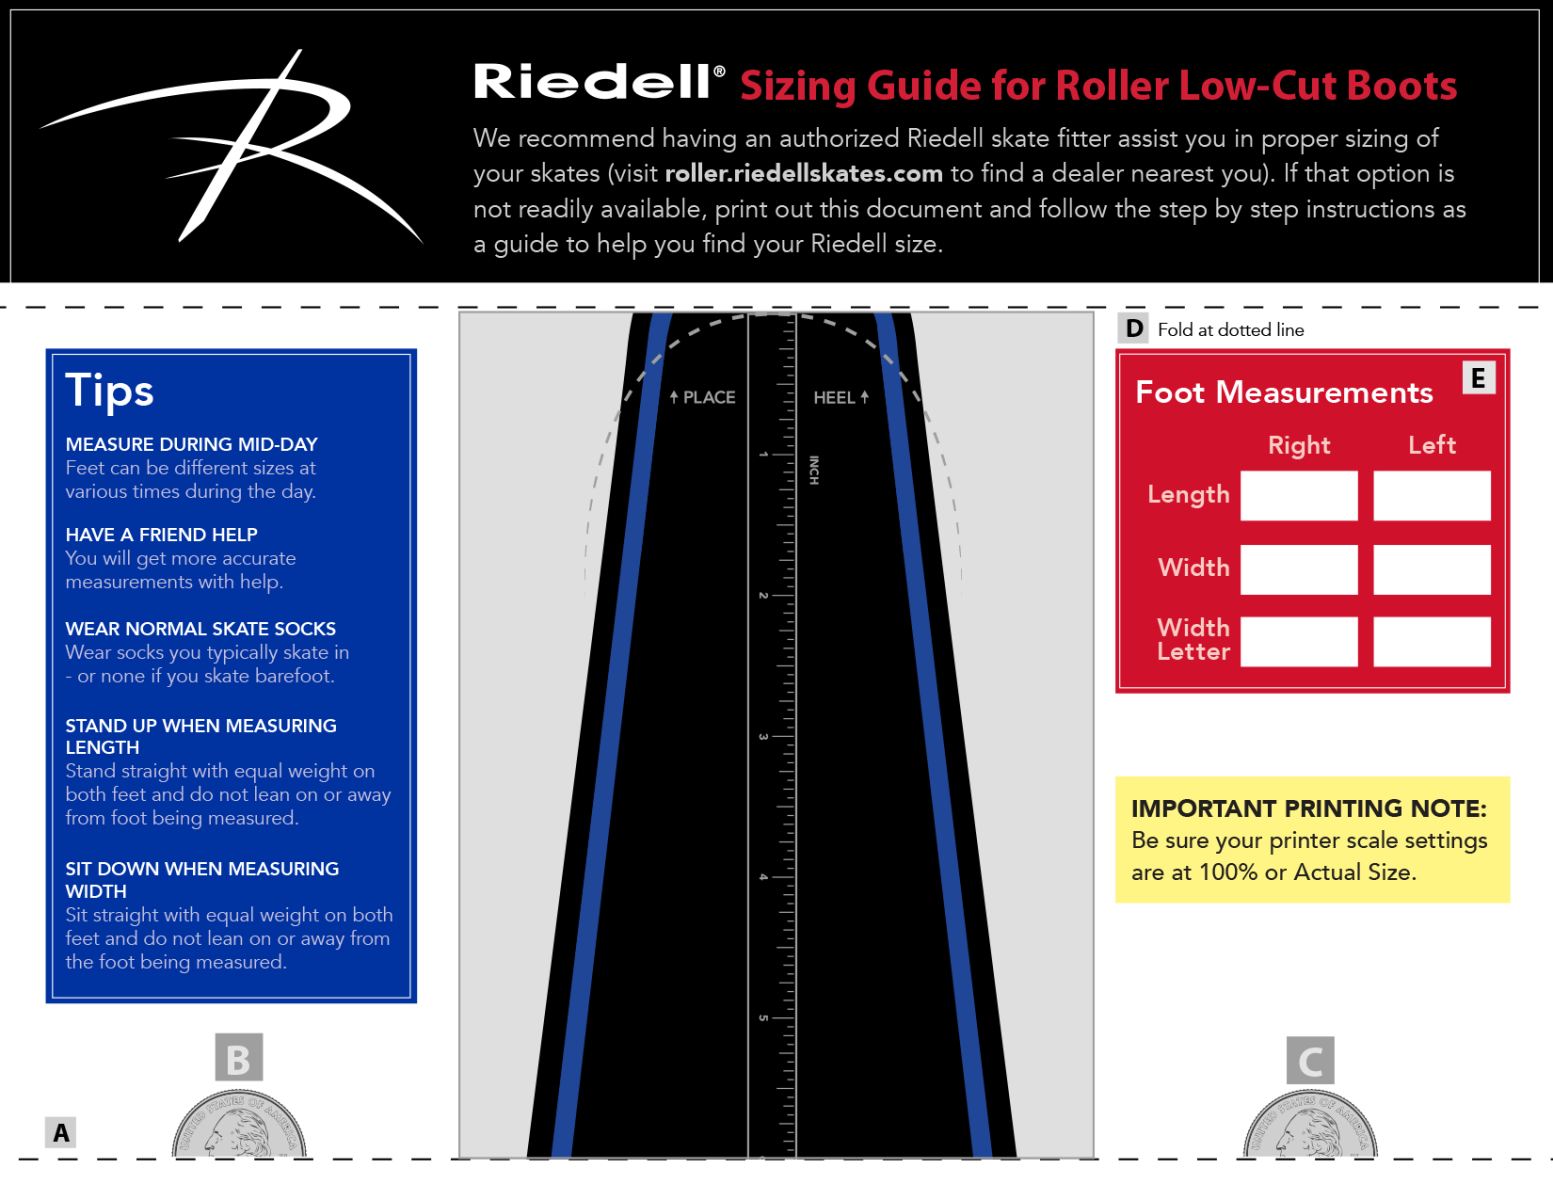 Riedell Roller Sizing Guide Low Cut Boots ImageButton